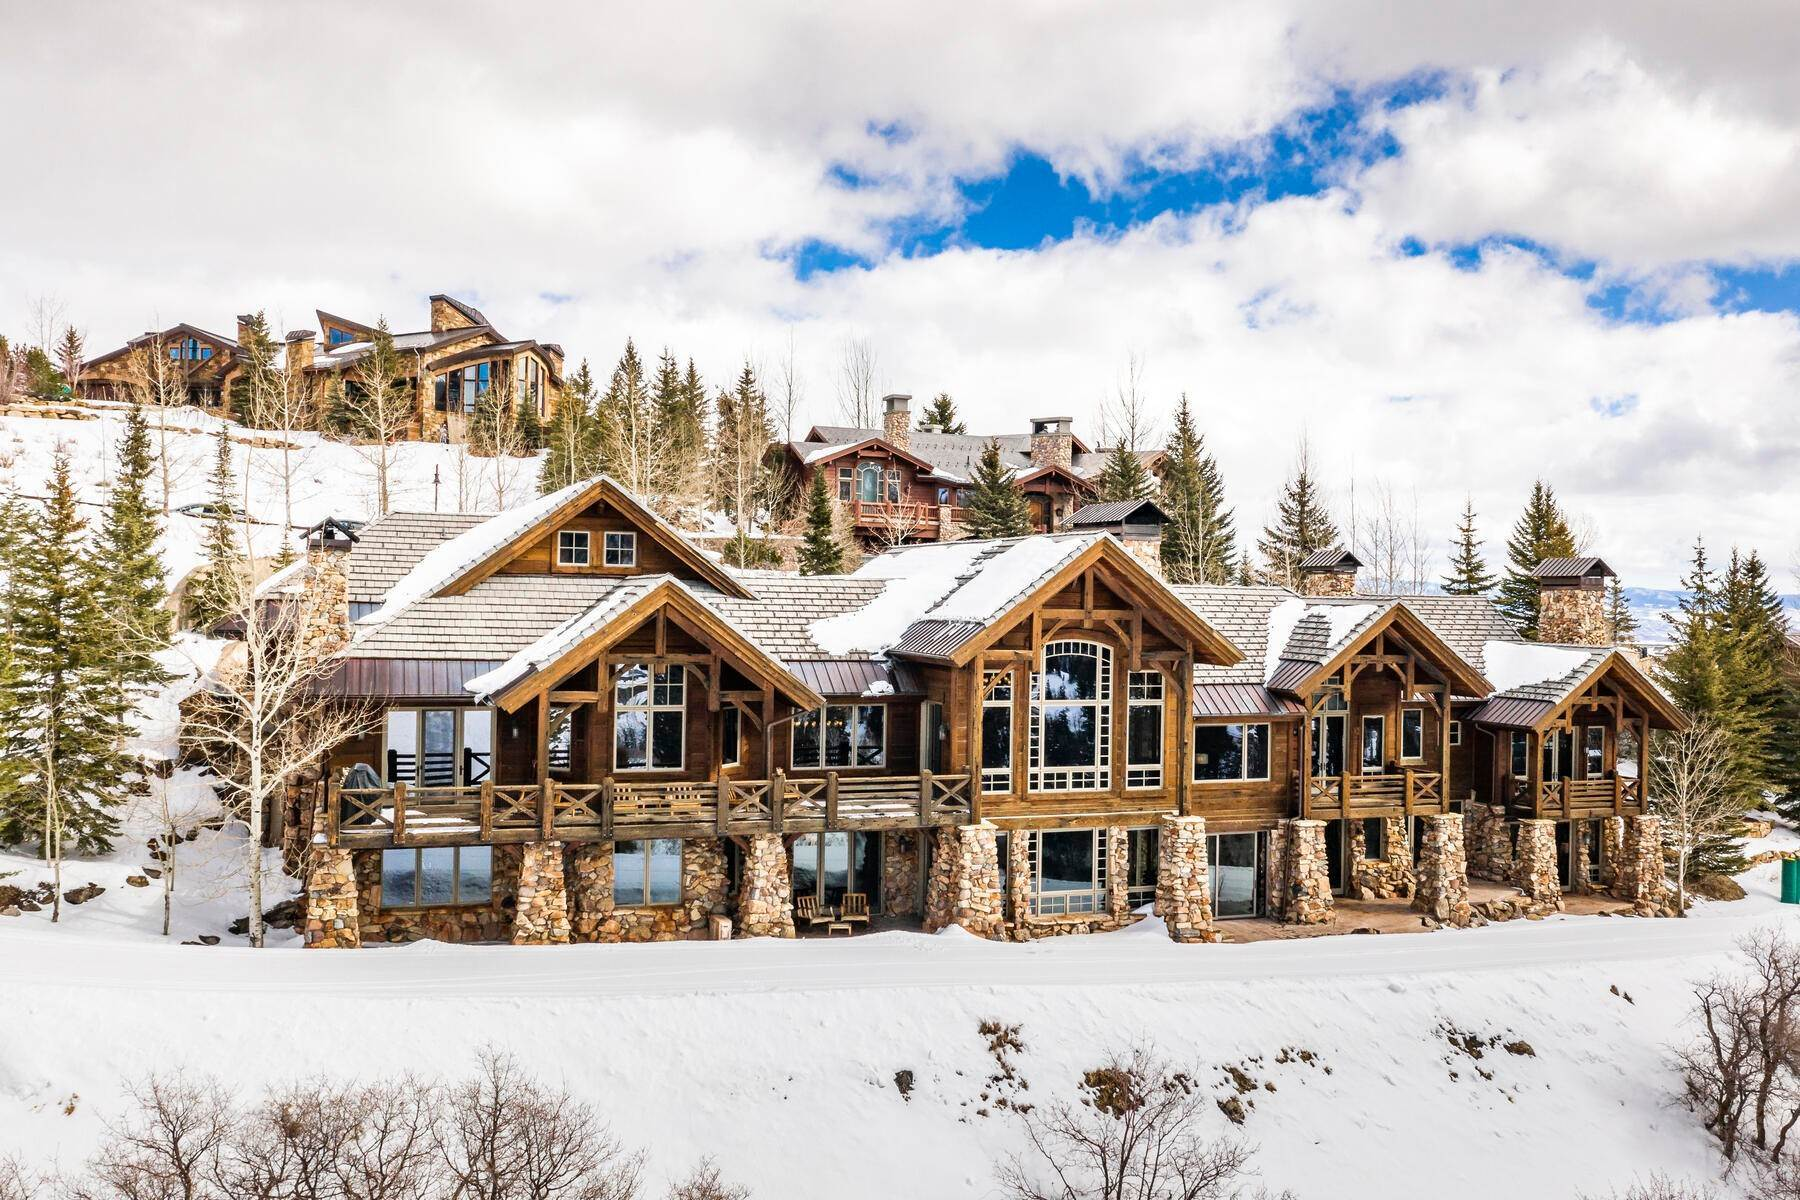 Single Family Homes for Sale at Classic Trestle Wood Timber Frame Deer Crest Ski-Home 10015 N Summit View Dr Heber, Utah 84032 United States